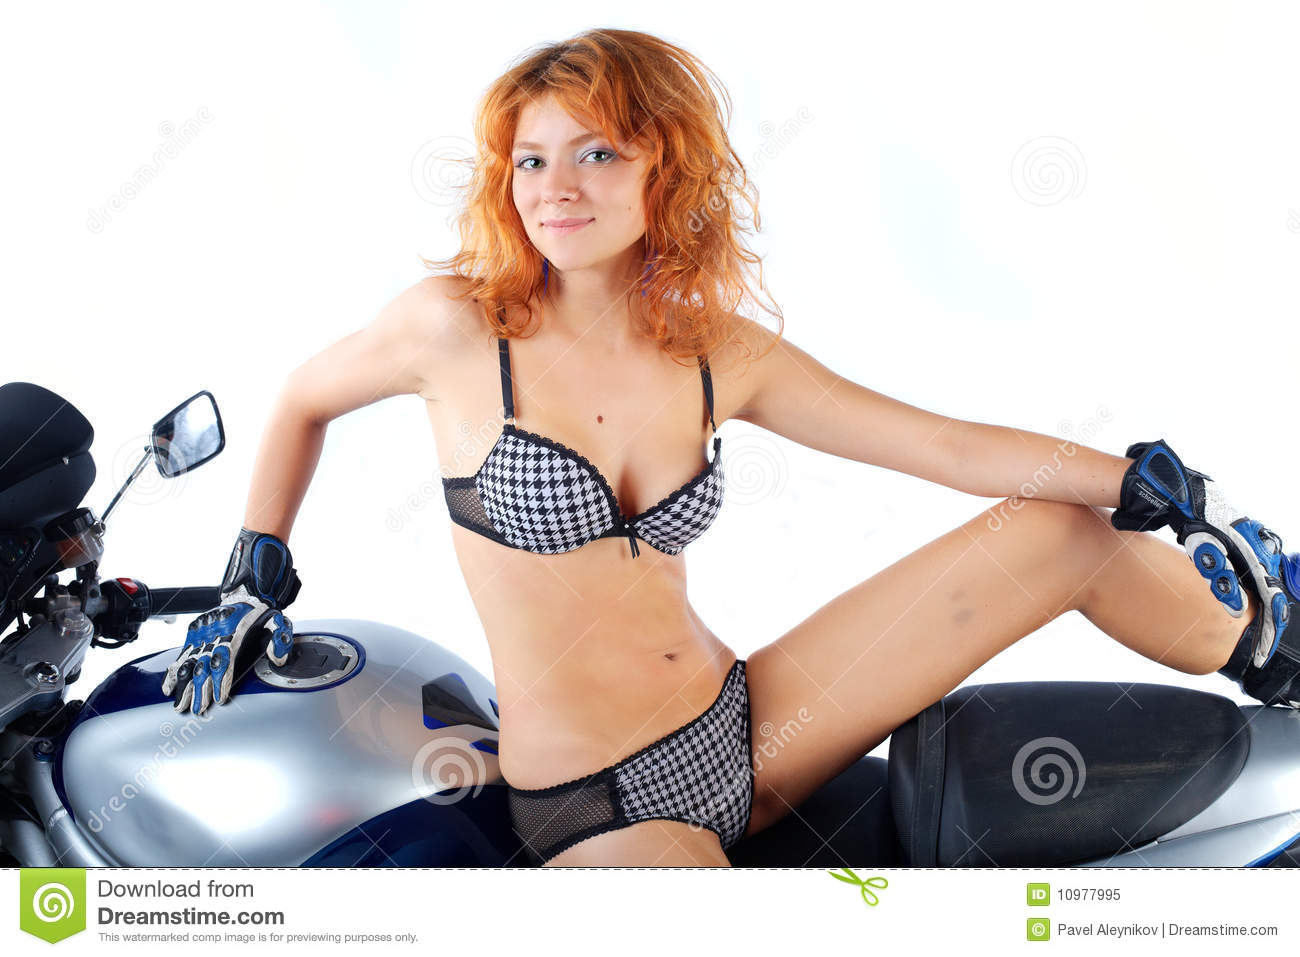 Girl With Motorcycle On White Stock Image - Image: 10977995